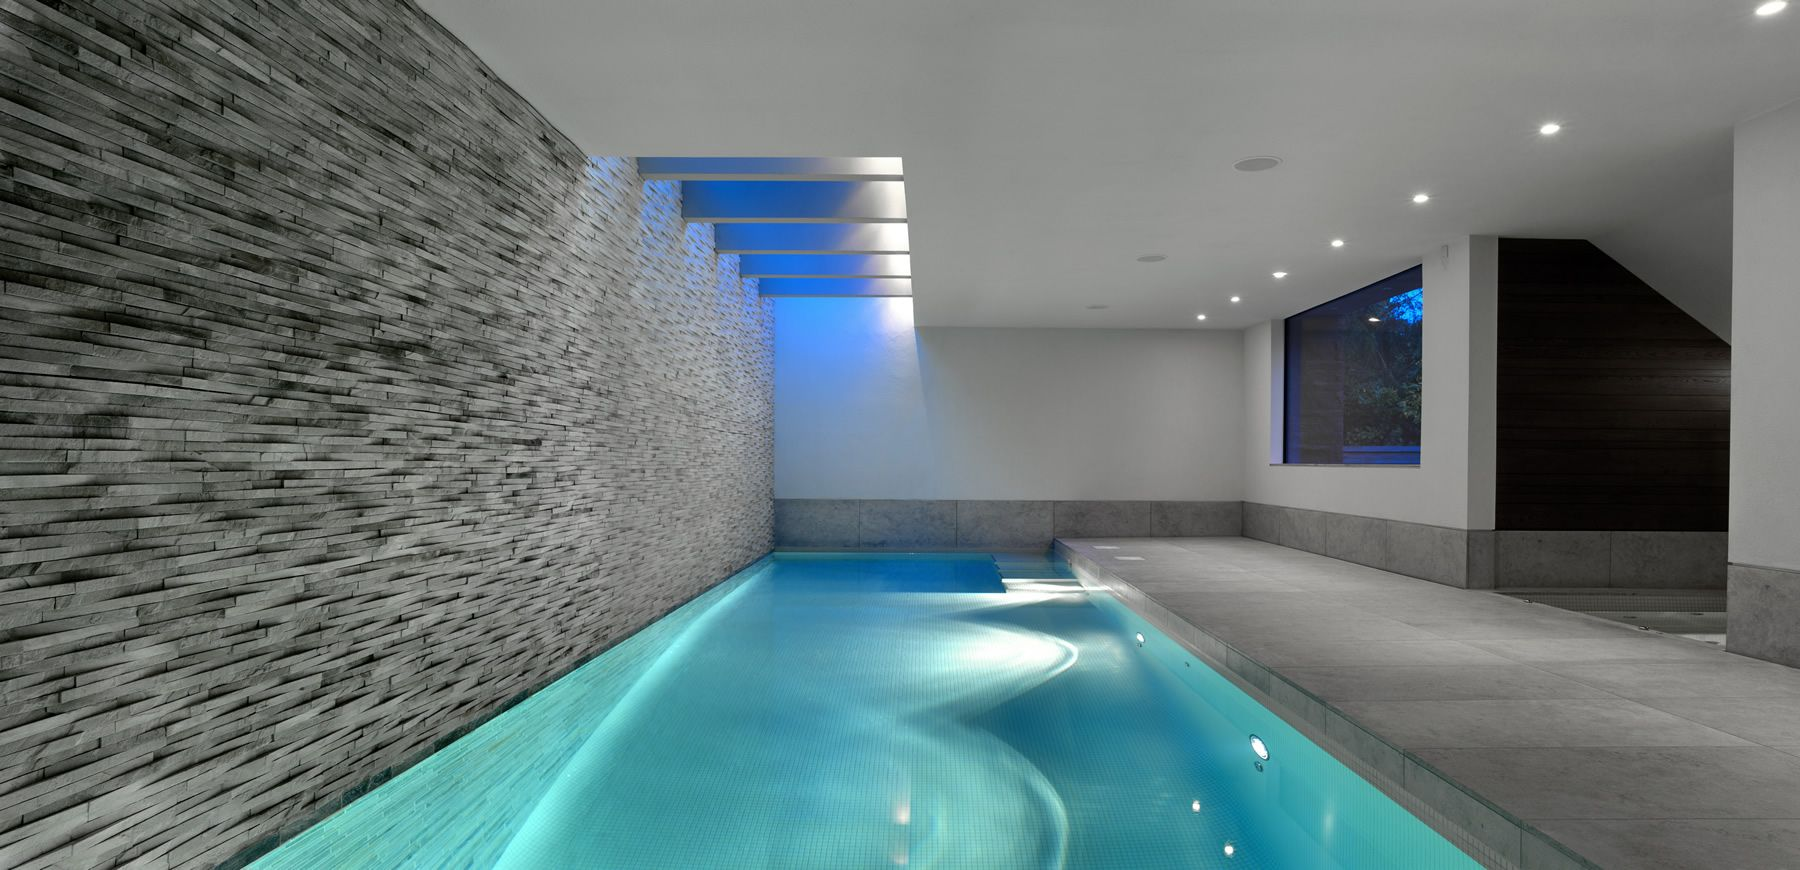 Private indoor pool  Astounding Indoor Swimming Pool Design # Image 381 50 Indoo Pool ...